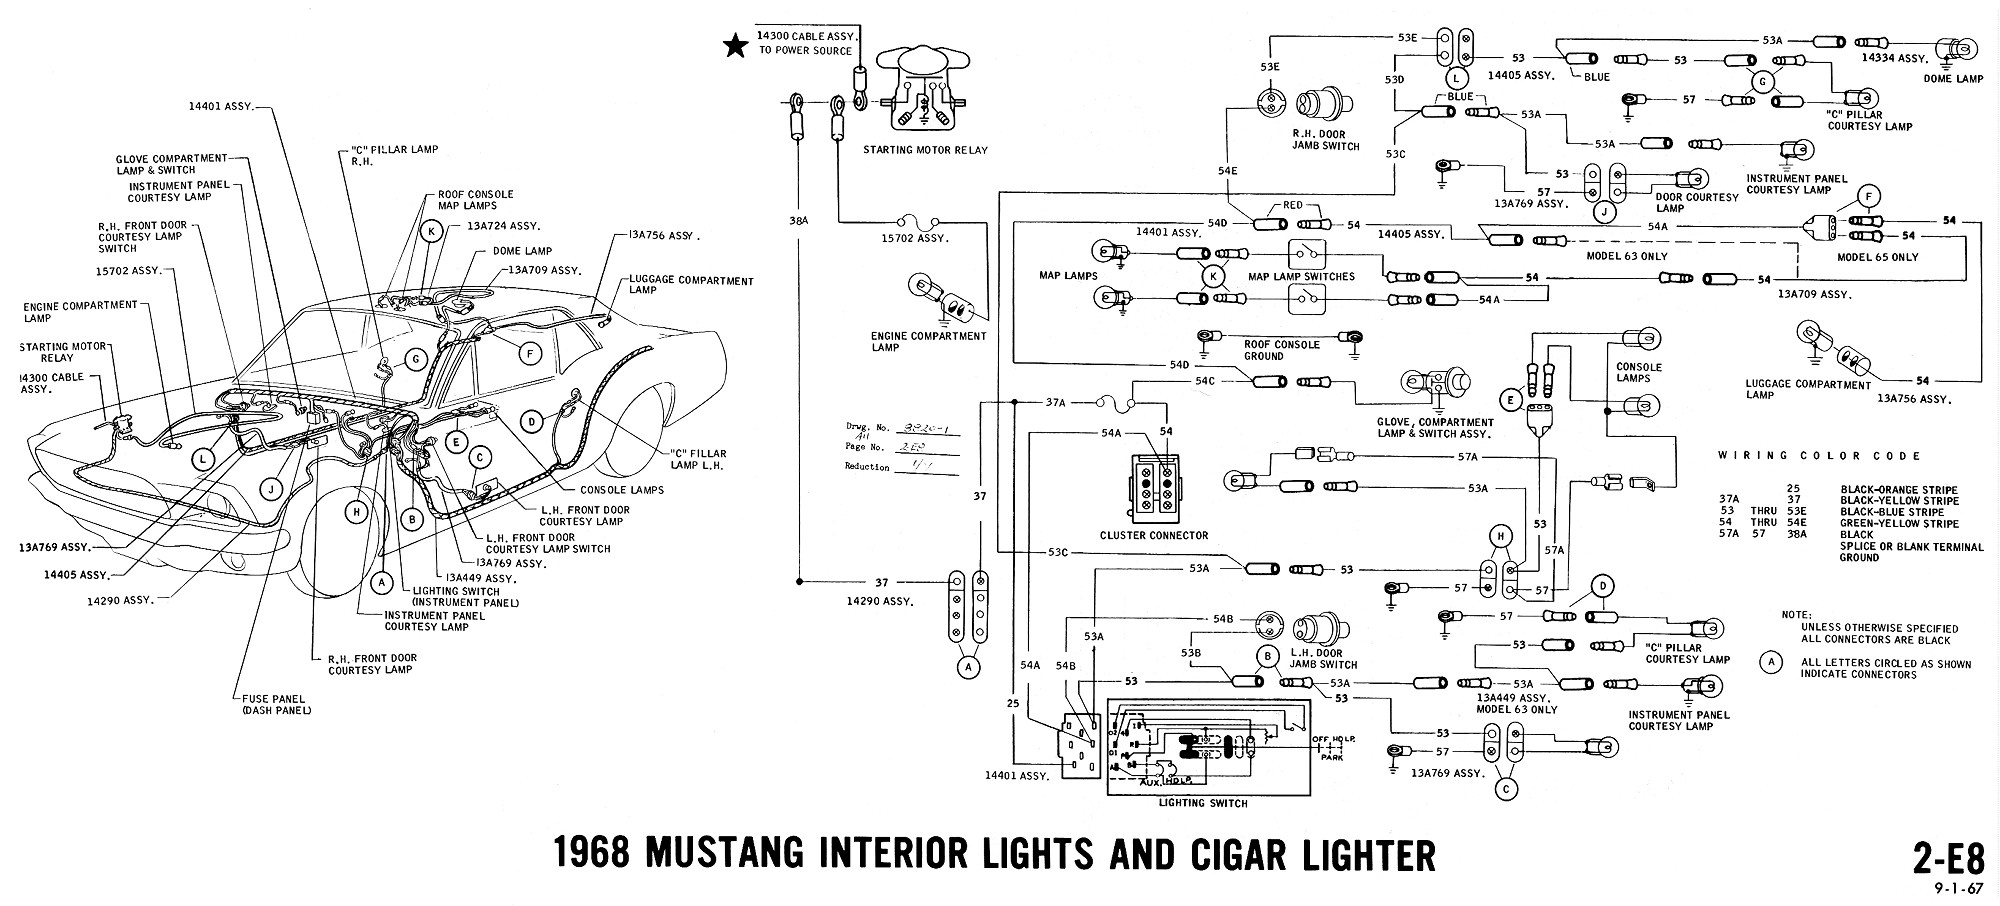 honda stereo wiring diagram with 1968 Mustang Wiring Diagram Vacuum Schematics on HONDA Car Radio Wiring Connector as well Xm Radio Wiring Diagram together with Nissan Sr20de Wiring Diagram moreover 93 Ford Explorer Stereo Wiring Diagram as well 2002 Honda Accord Wiring Diagram.